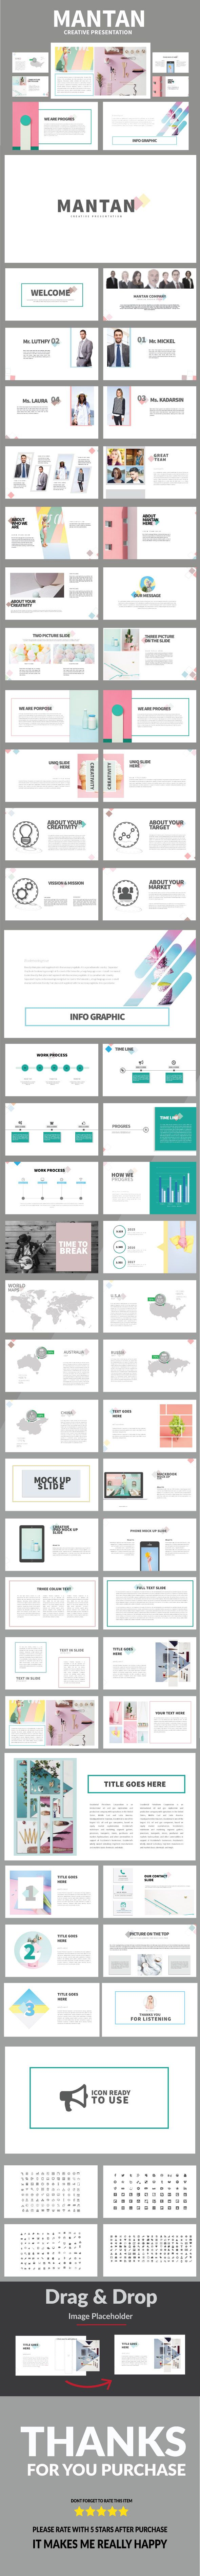 Mantan Multipurpose Powerpoint (PowerPoint Templates)